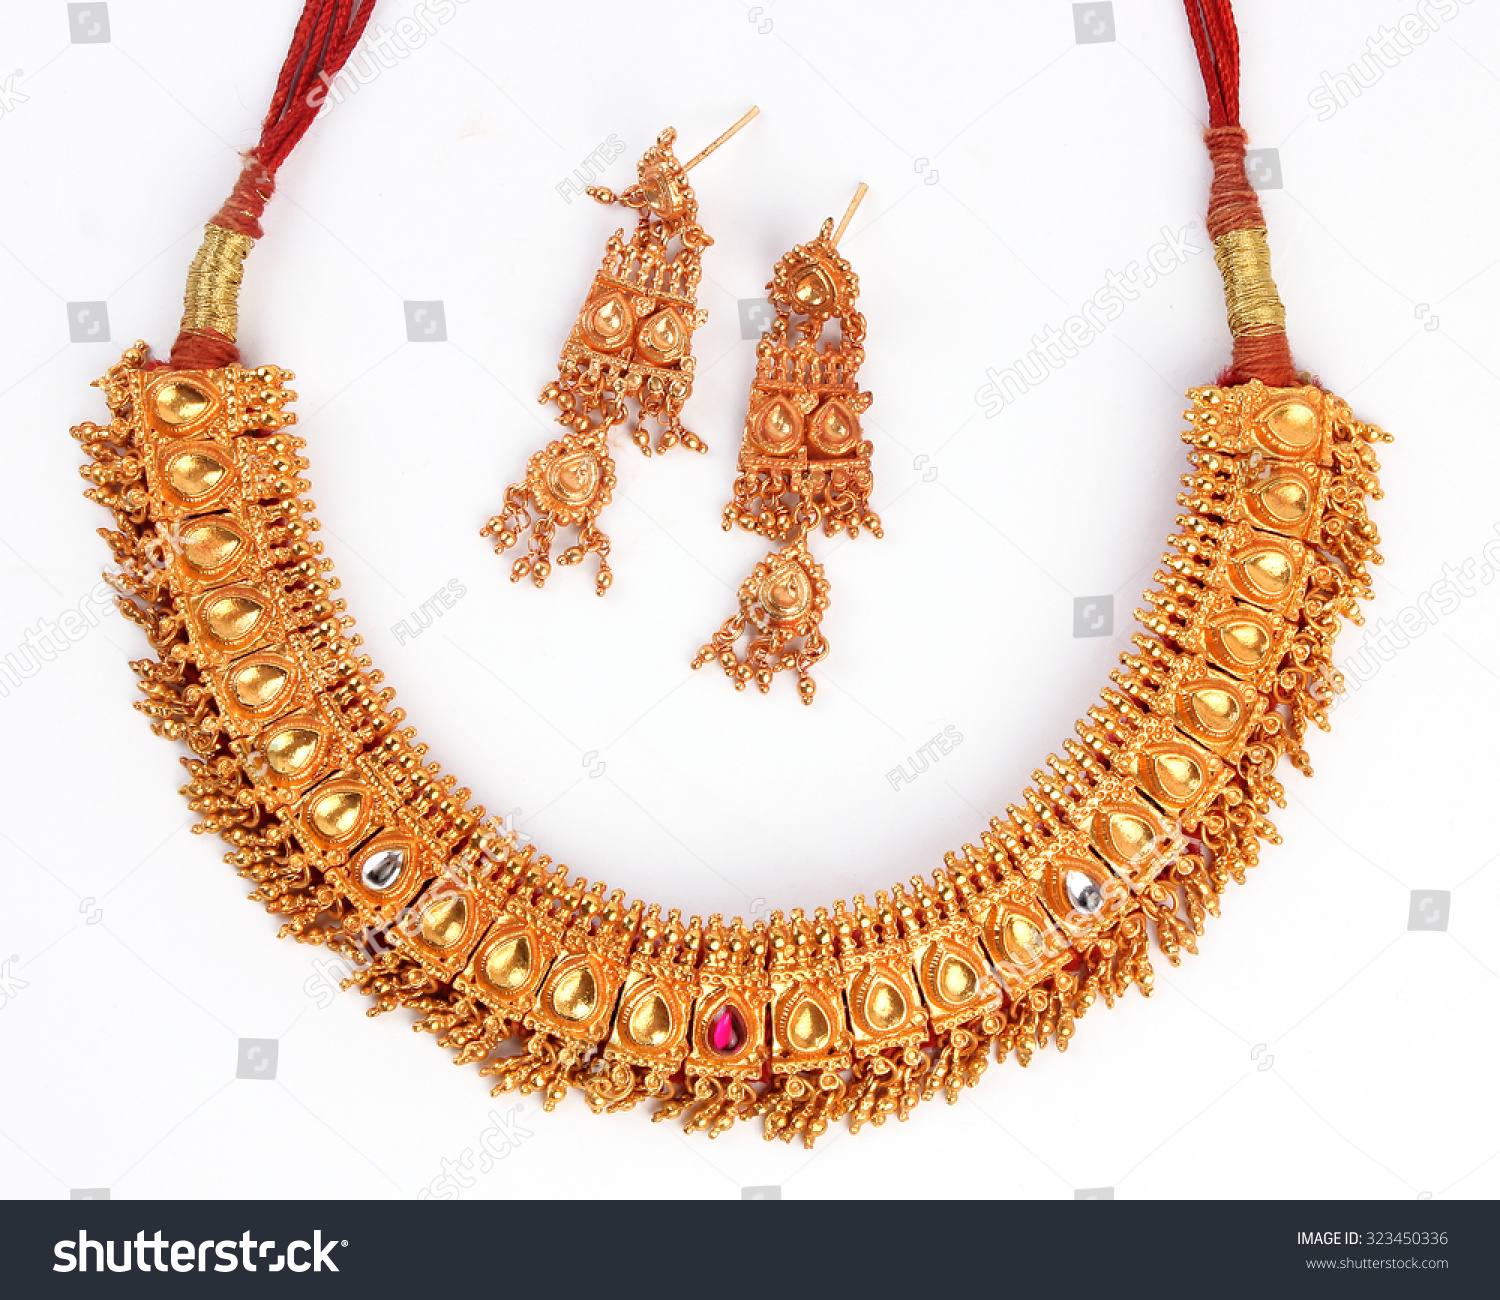 Indian Traditional Gold Jewellery Necklace Earrings Stock Photo ...